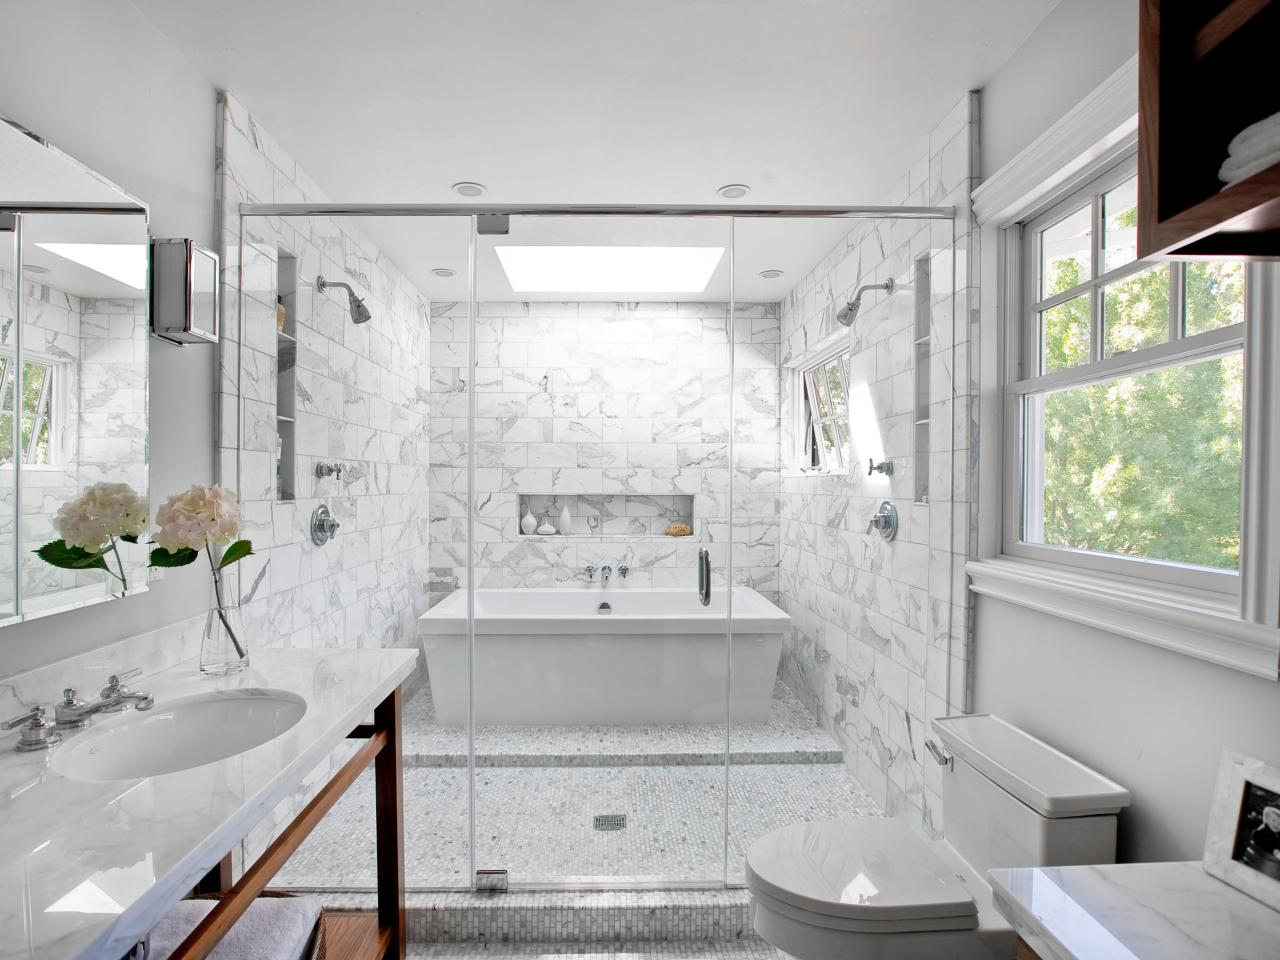 bathroom-simple-and-neat-image-of-white-bathroom-decoration-using-white-marble-high-end-bathroom-tile-including-in-wall-white-marble-tile-bathroom-flooring-and-white-marble-bathroom-vanity-tops-inter